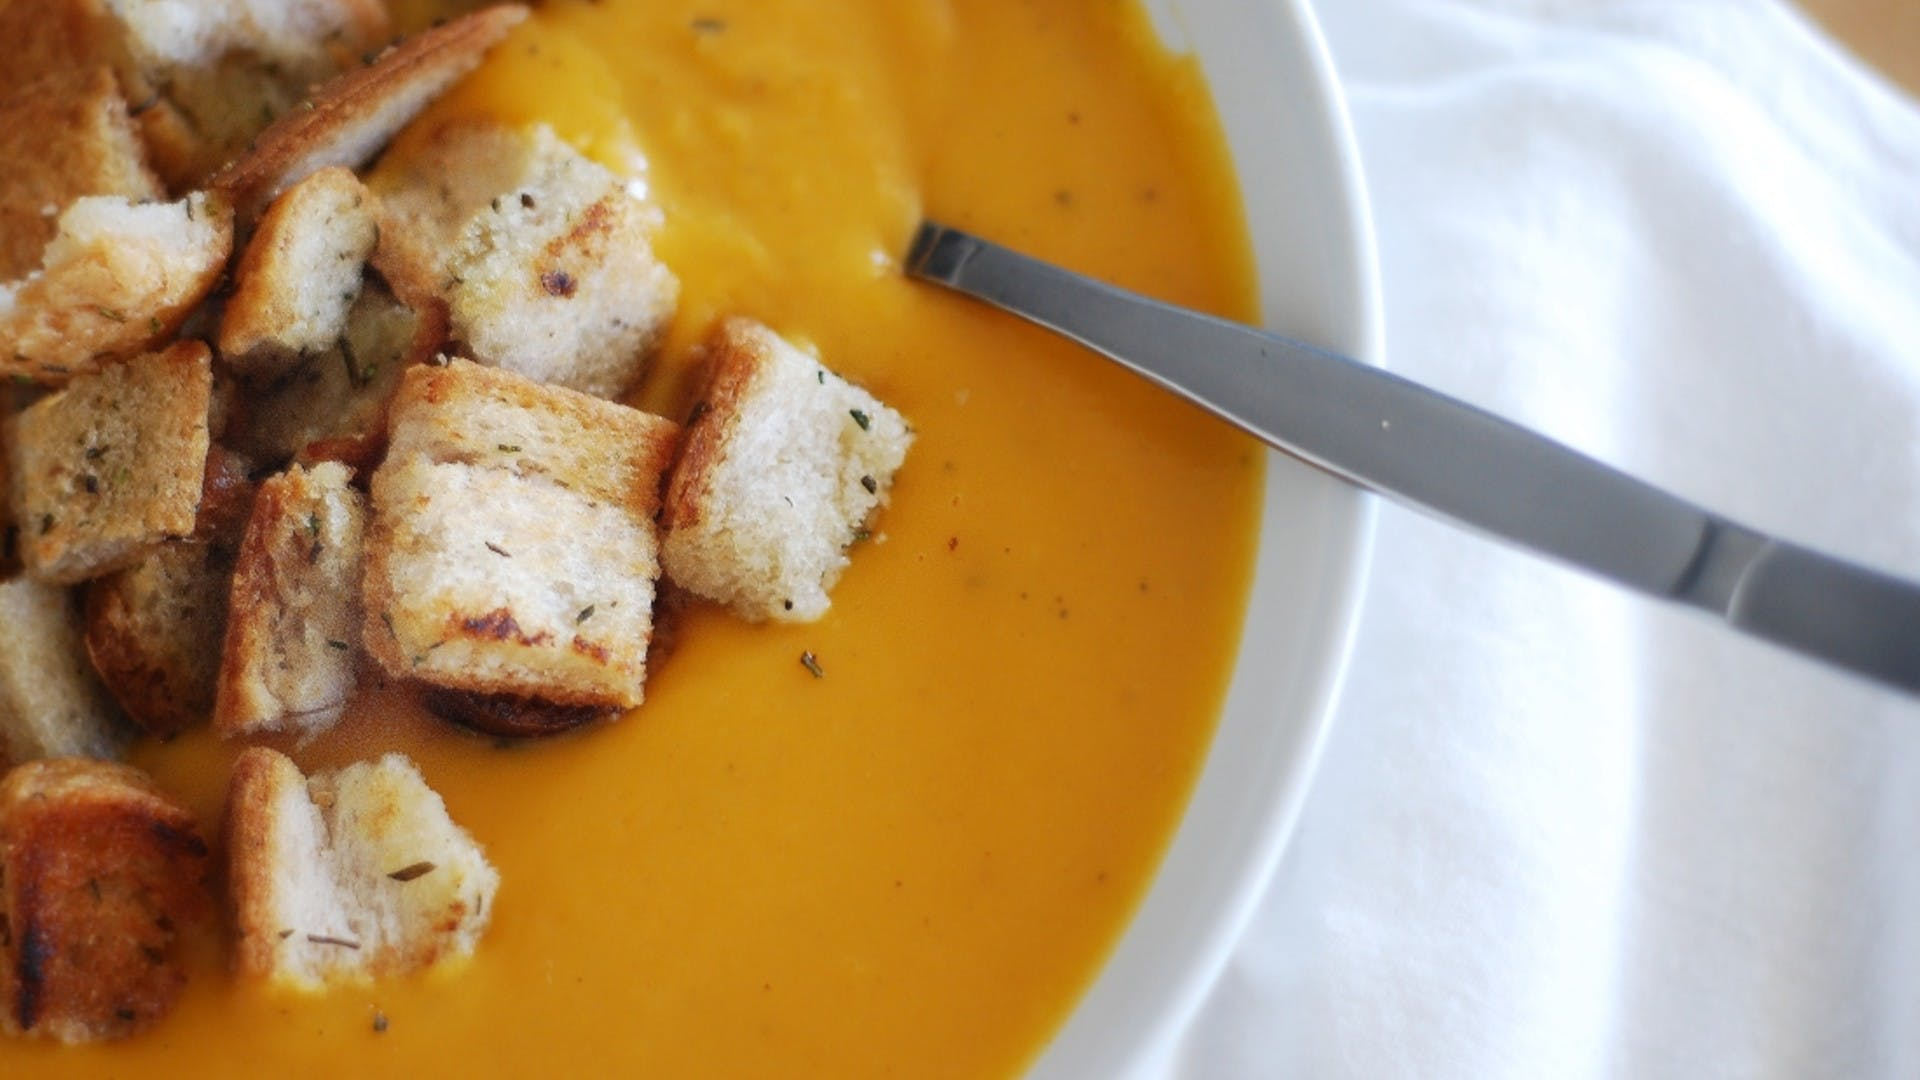 Roasted Butternut Squash Soup with Garlic and Rosemary Croutons